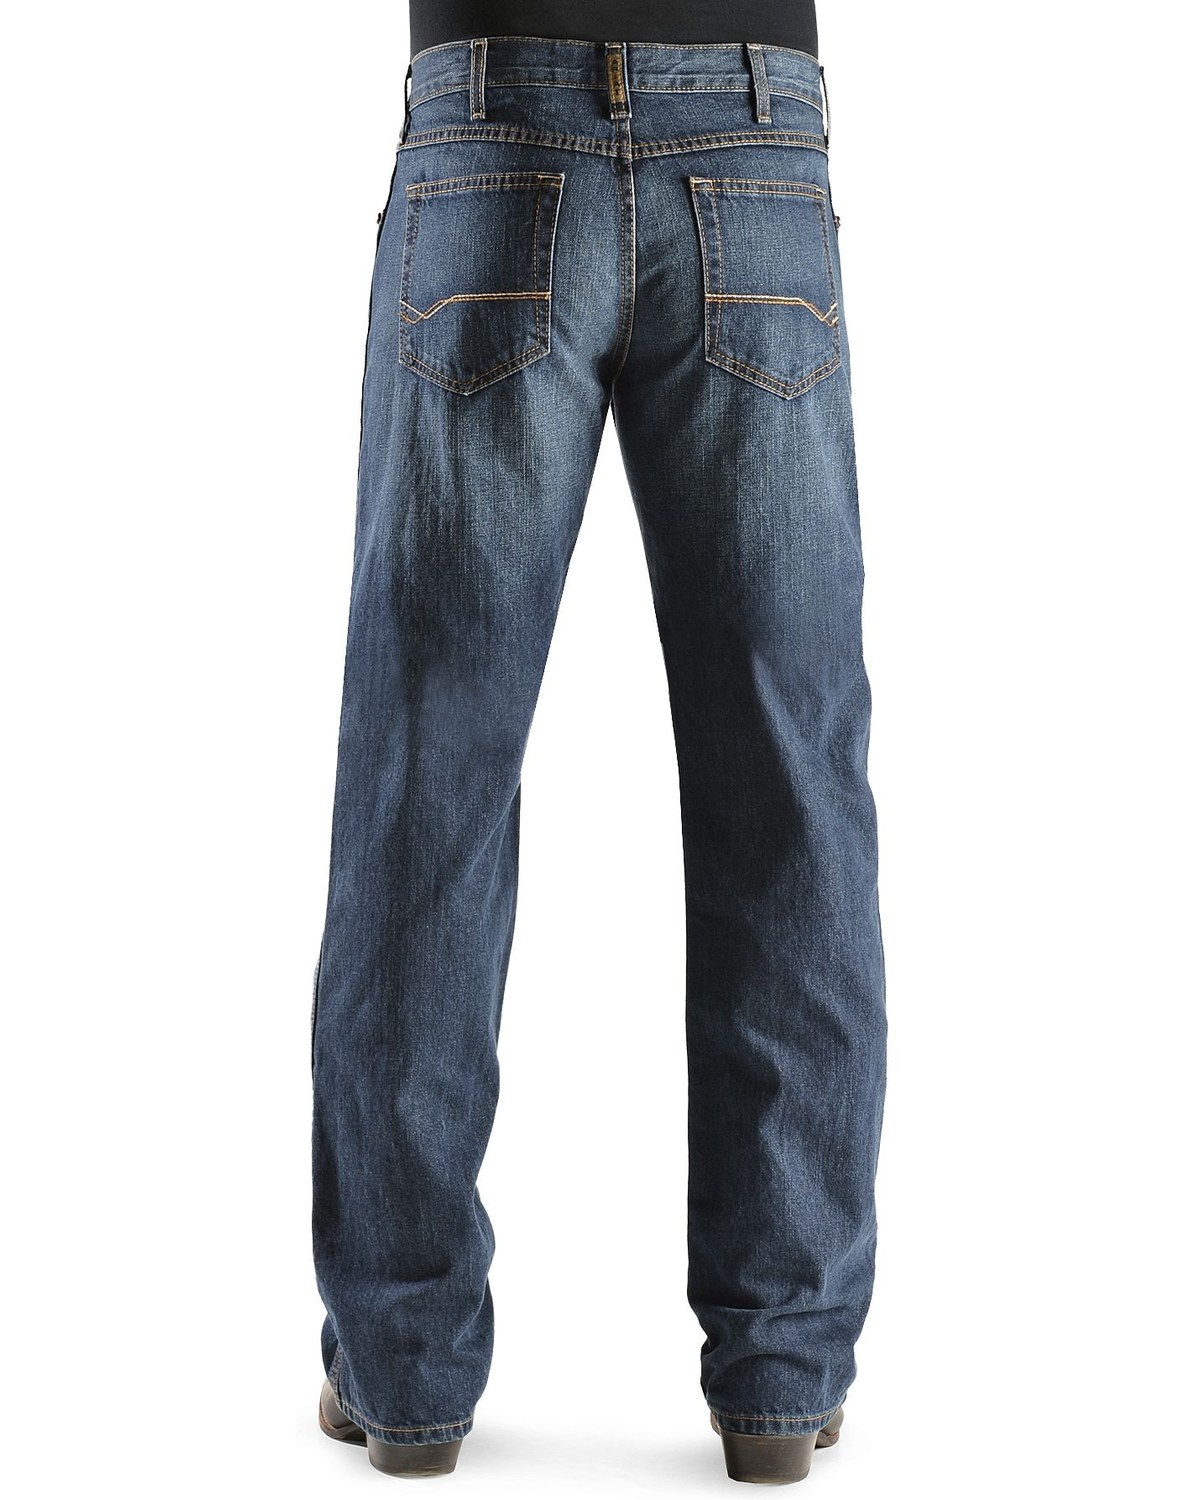 Ariat Men S Heritage Classic Fit Straight Leg Jeans Boot Barn